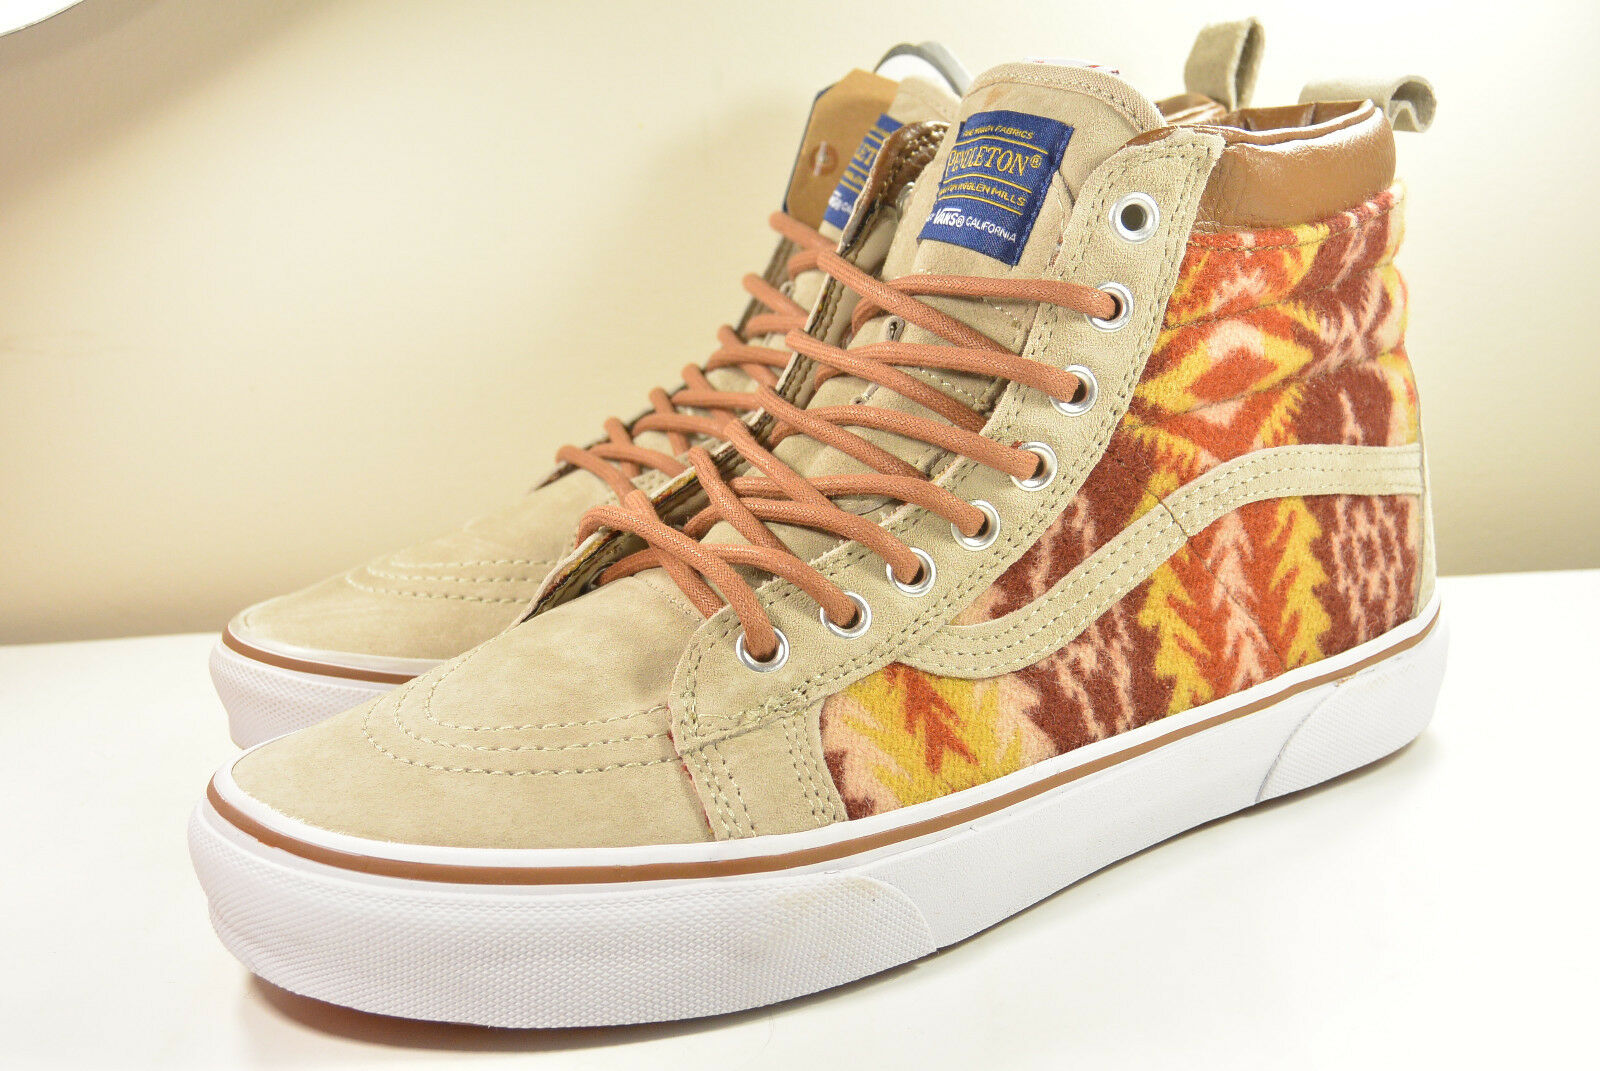 DS 2015 VANS PENDLETON MTE (MOUNTAIN EDITION) TRIBAL TAN HI 9 - 12 OFF THE WALL